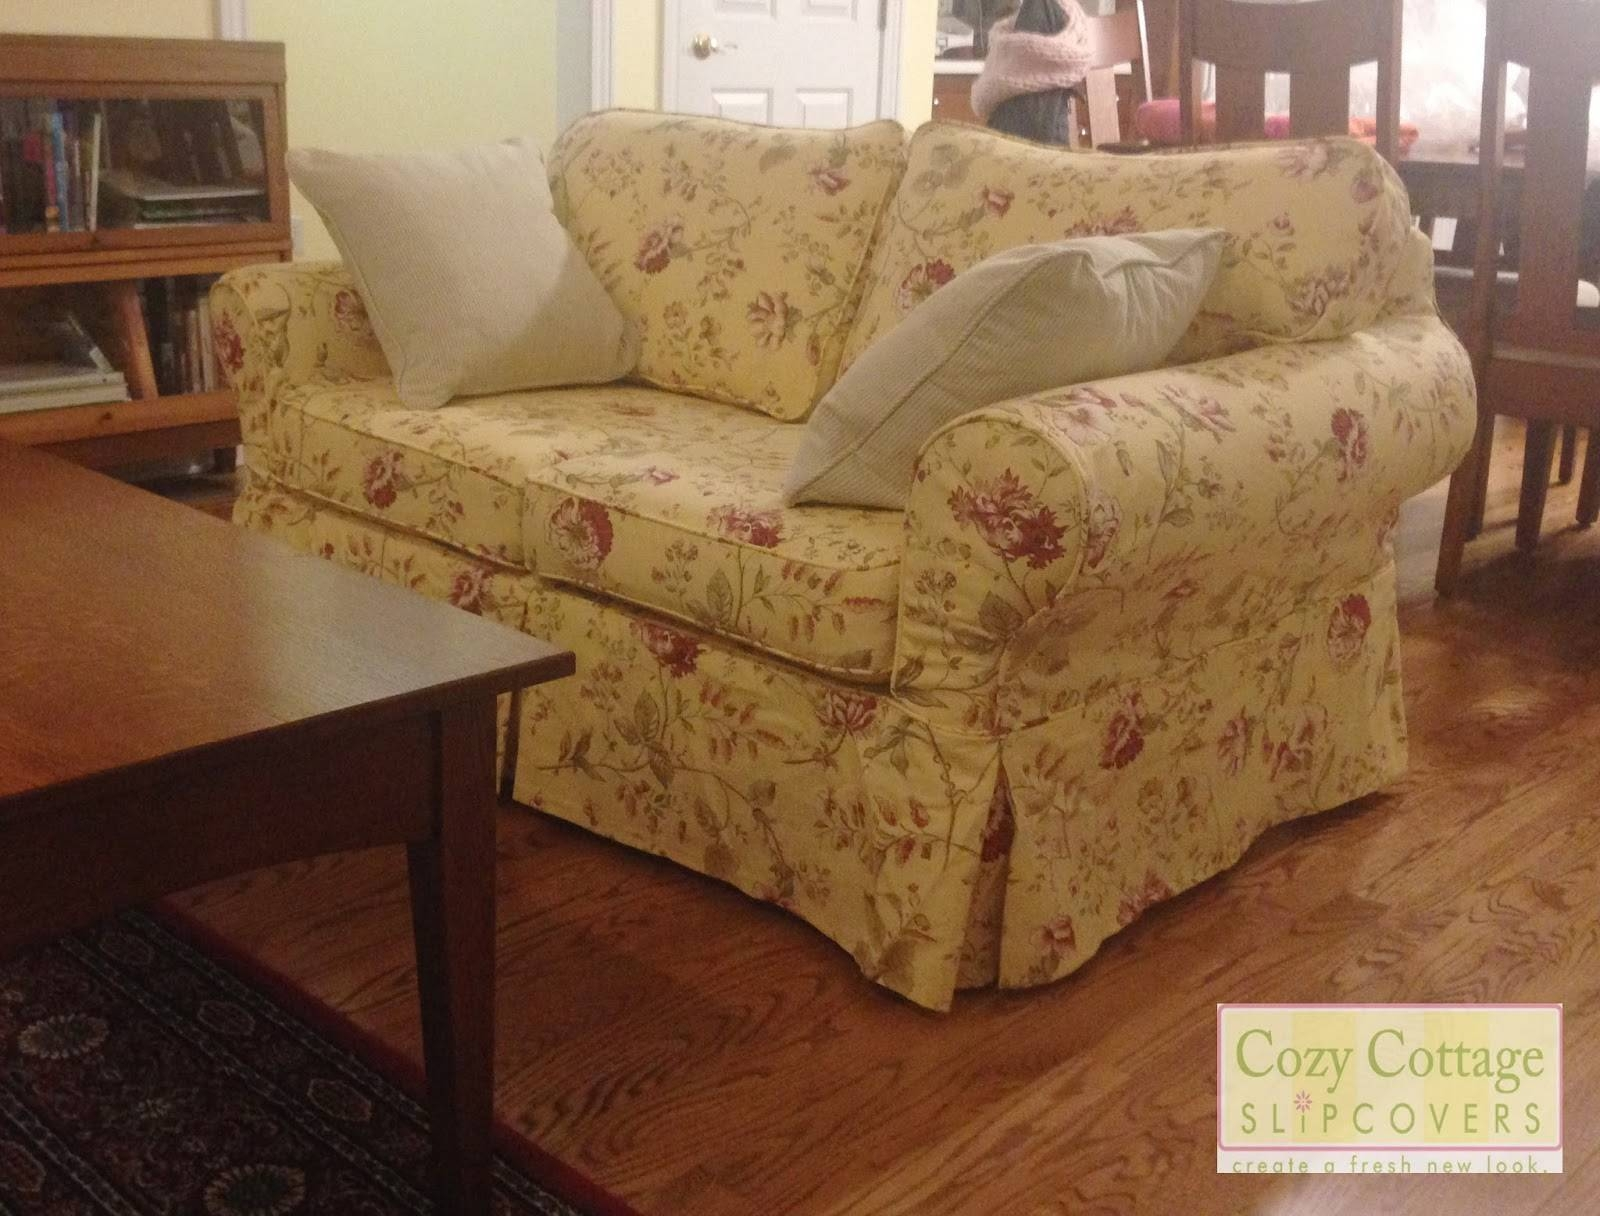 style couches home cottage inside sale couchiching couch ideas furniture cottages for